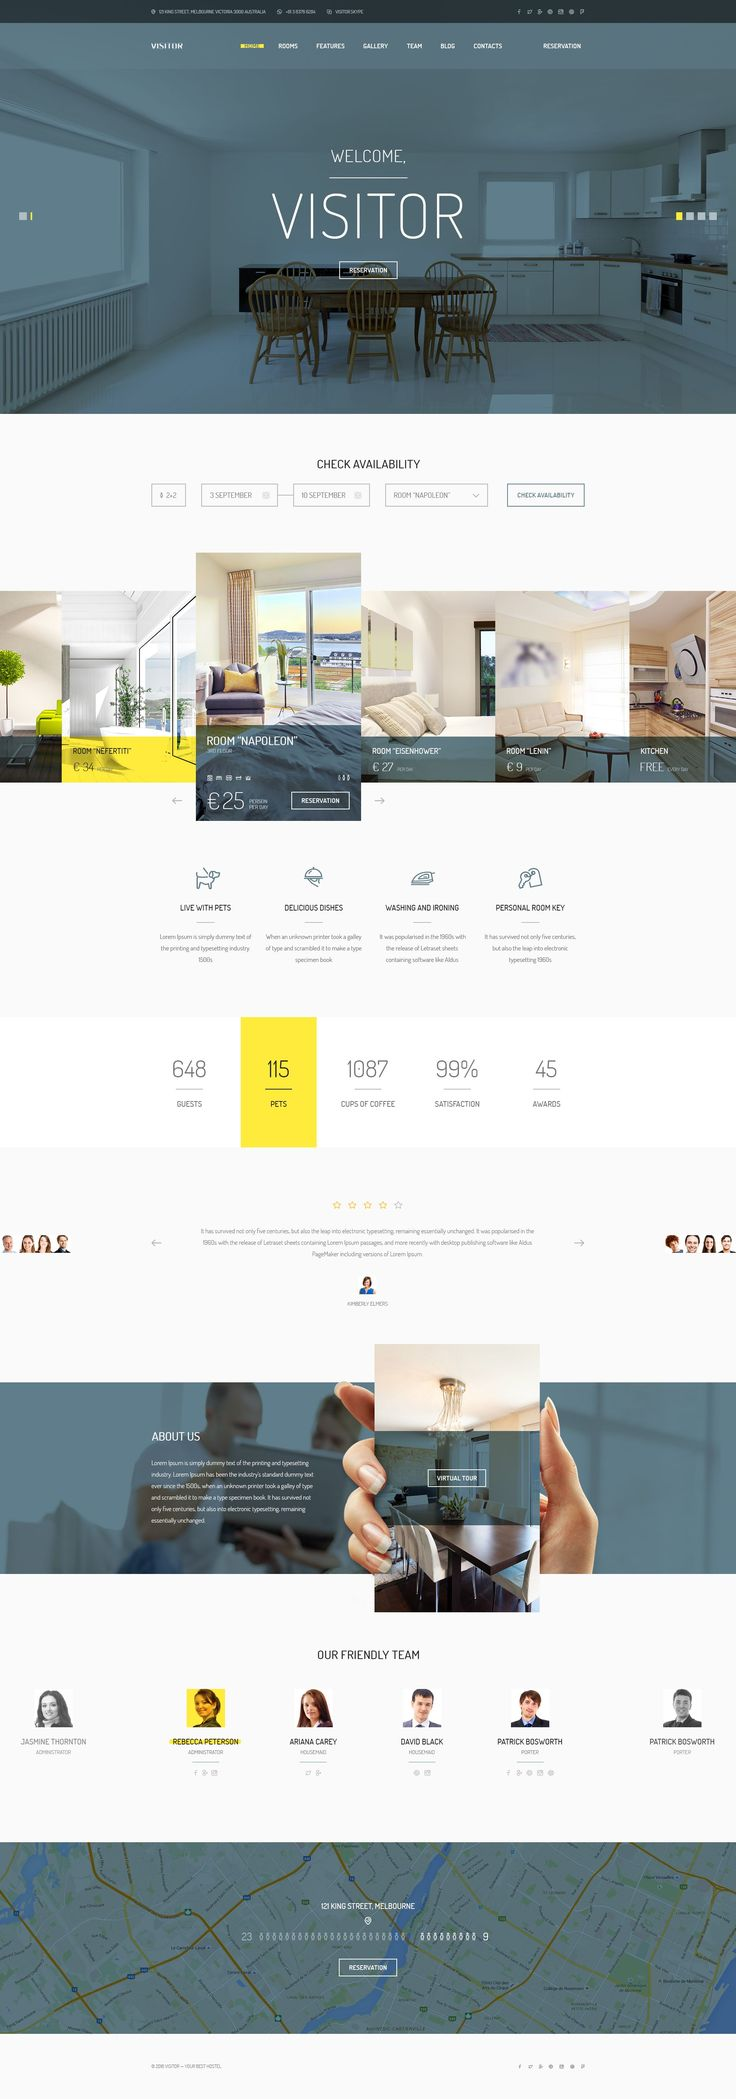 Visitor — modern and professionally crafted PSD theme which can be used for be used for small #hotel, hostel, guest houses, resort, room reservation, #travel or other website. #psdtemplates Download Now➝ http://themeforest.net/item/visitor-online-hostelhotel-booking-psd-template/15285217?ref=Datasata More